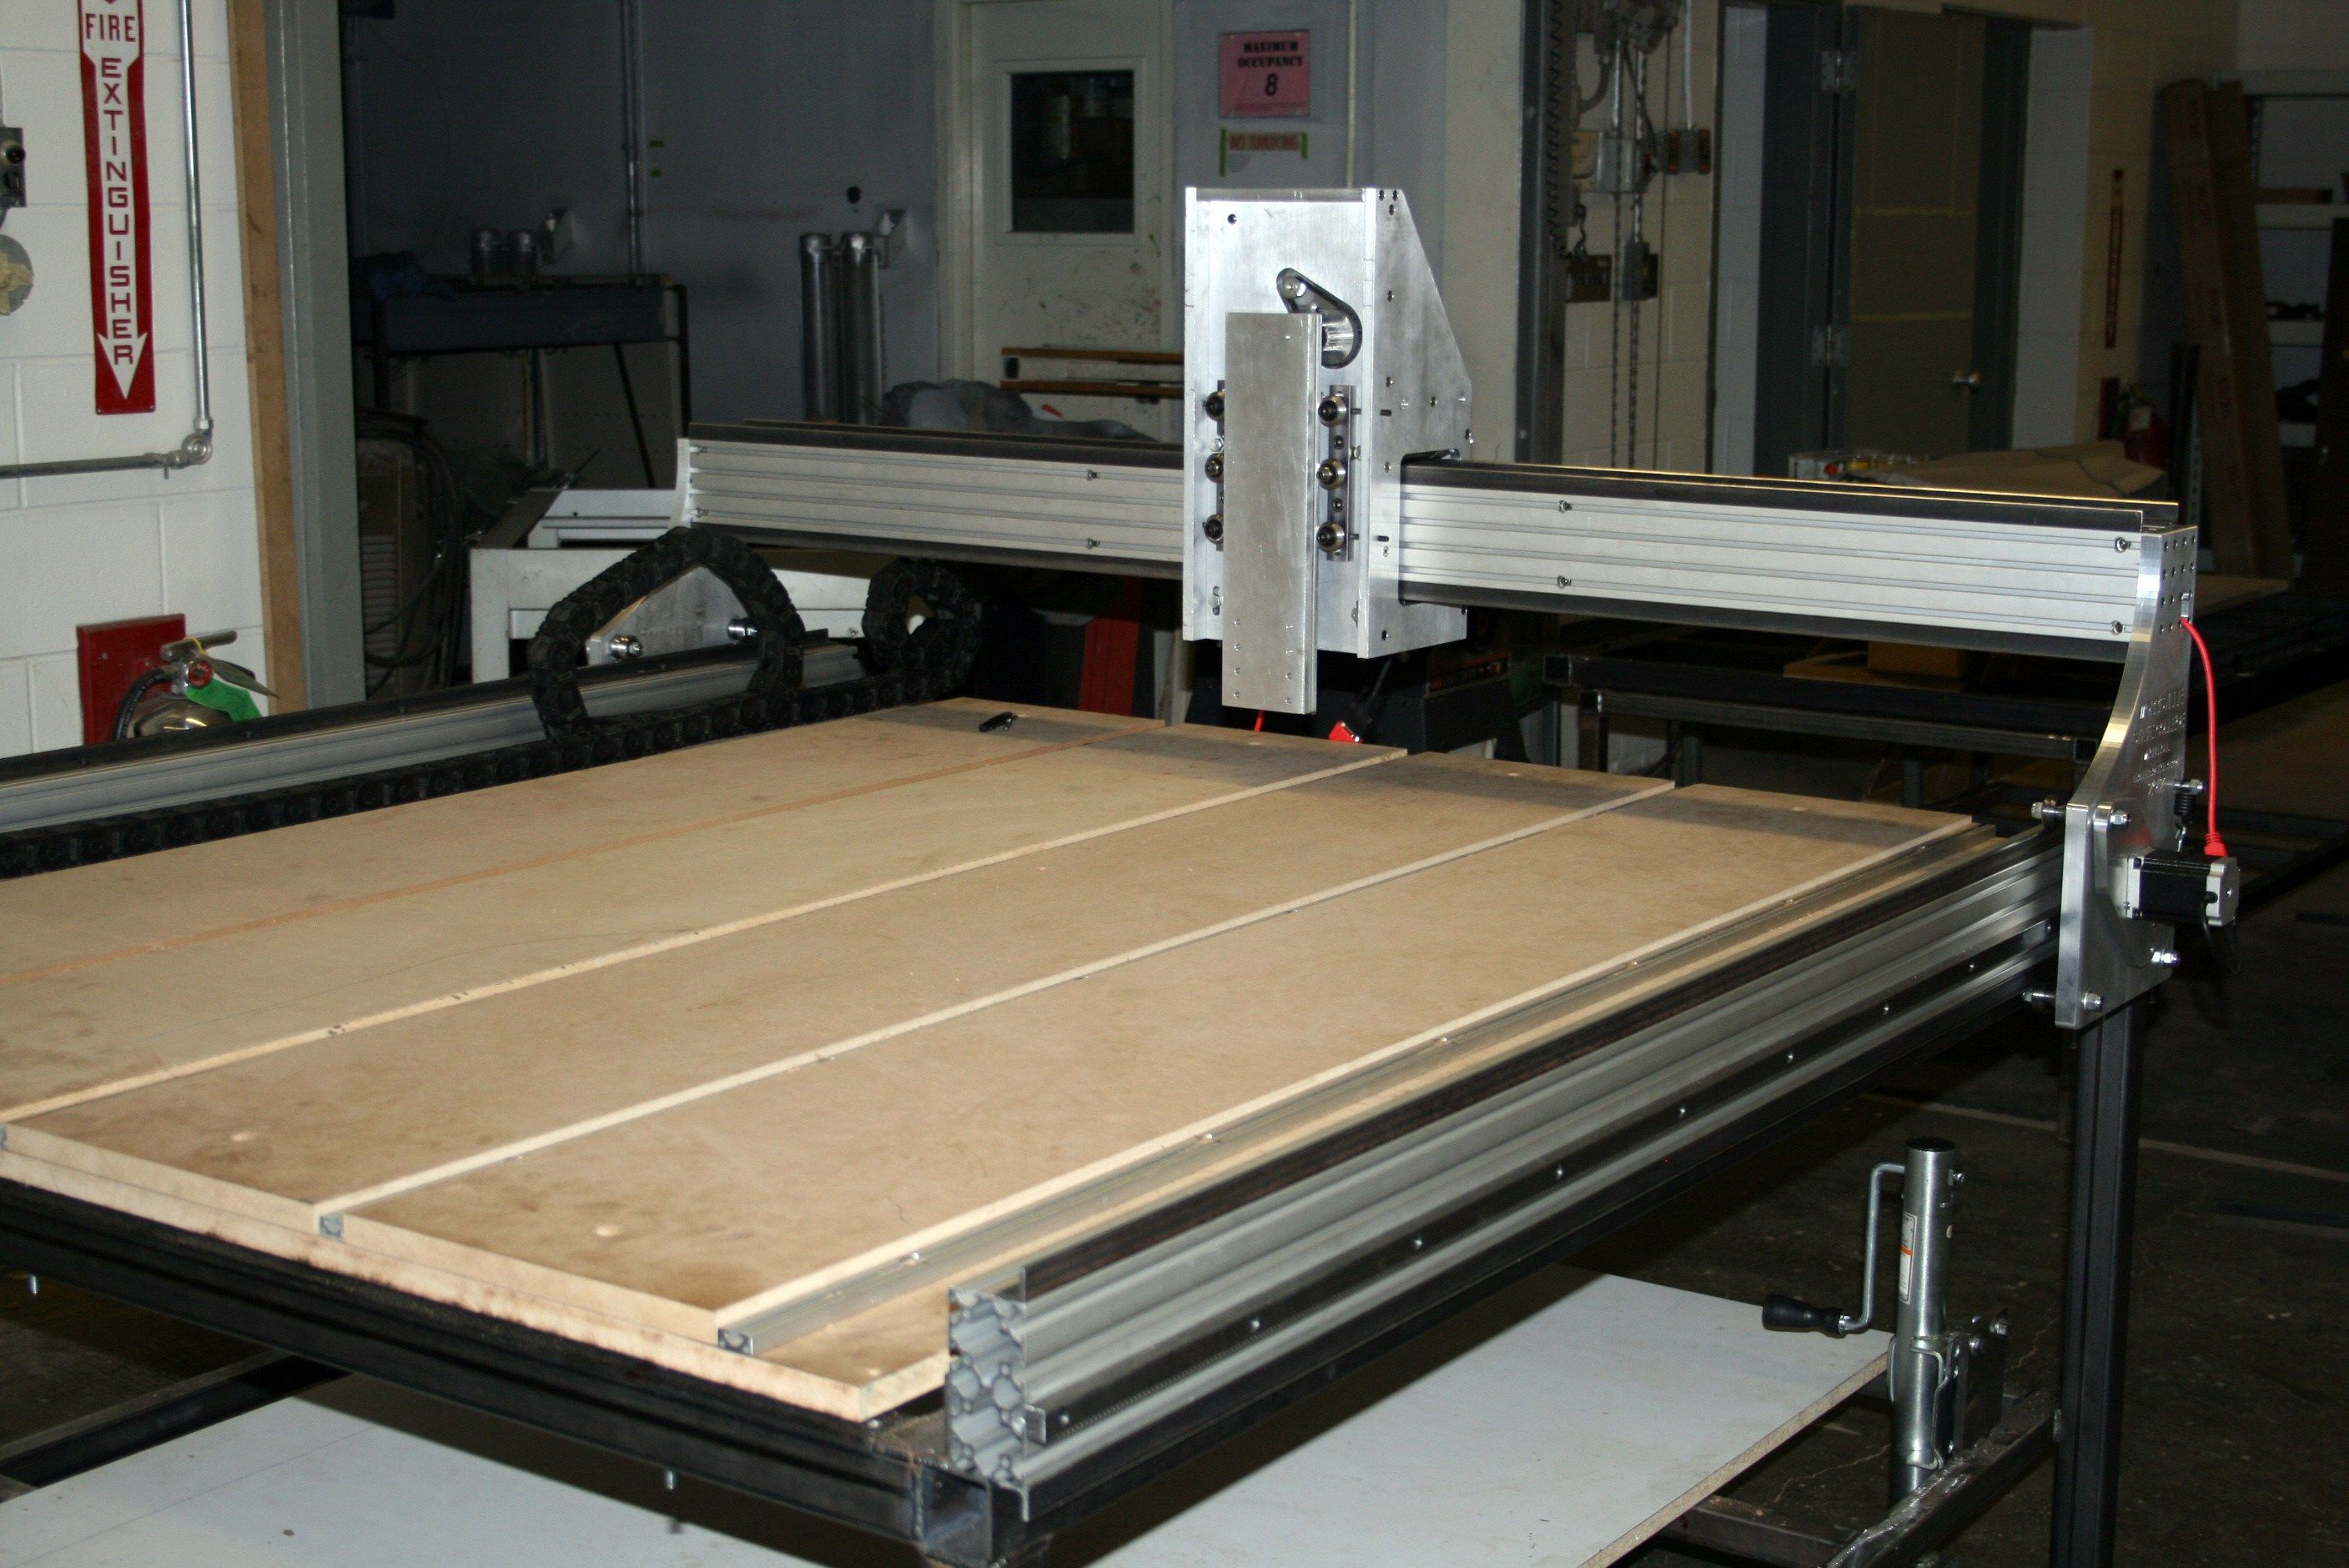 Pin on CNC Router Plans & Builds